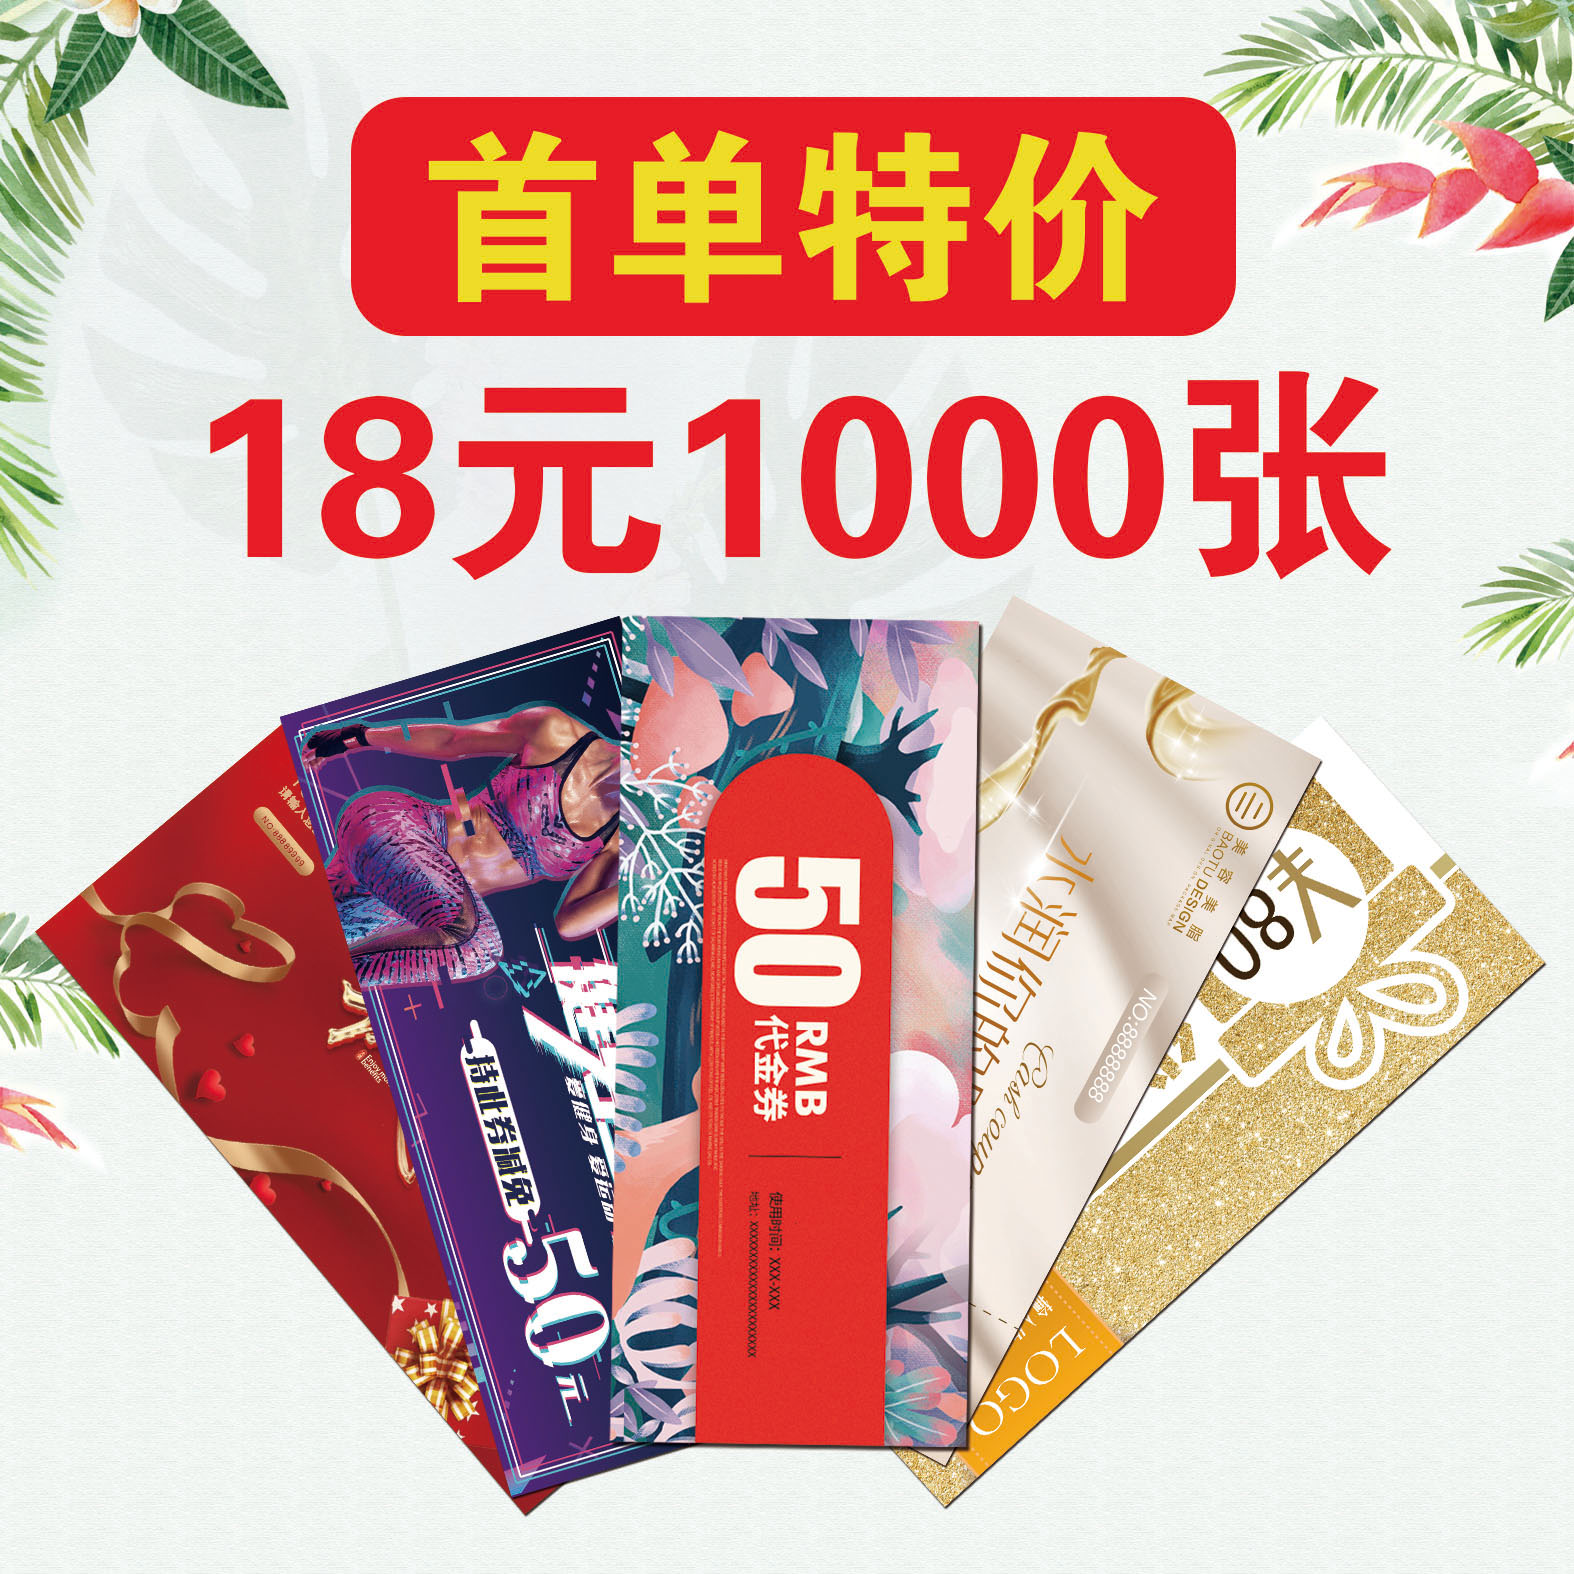 Coupons coupons, coupons, customized lottery, front and back tickets, free design tickets, cash, meal card, parking card